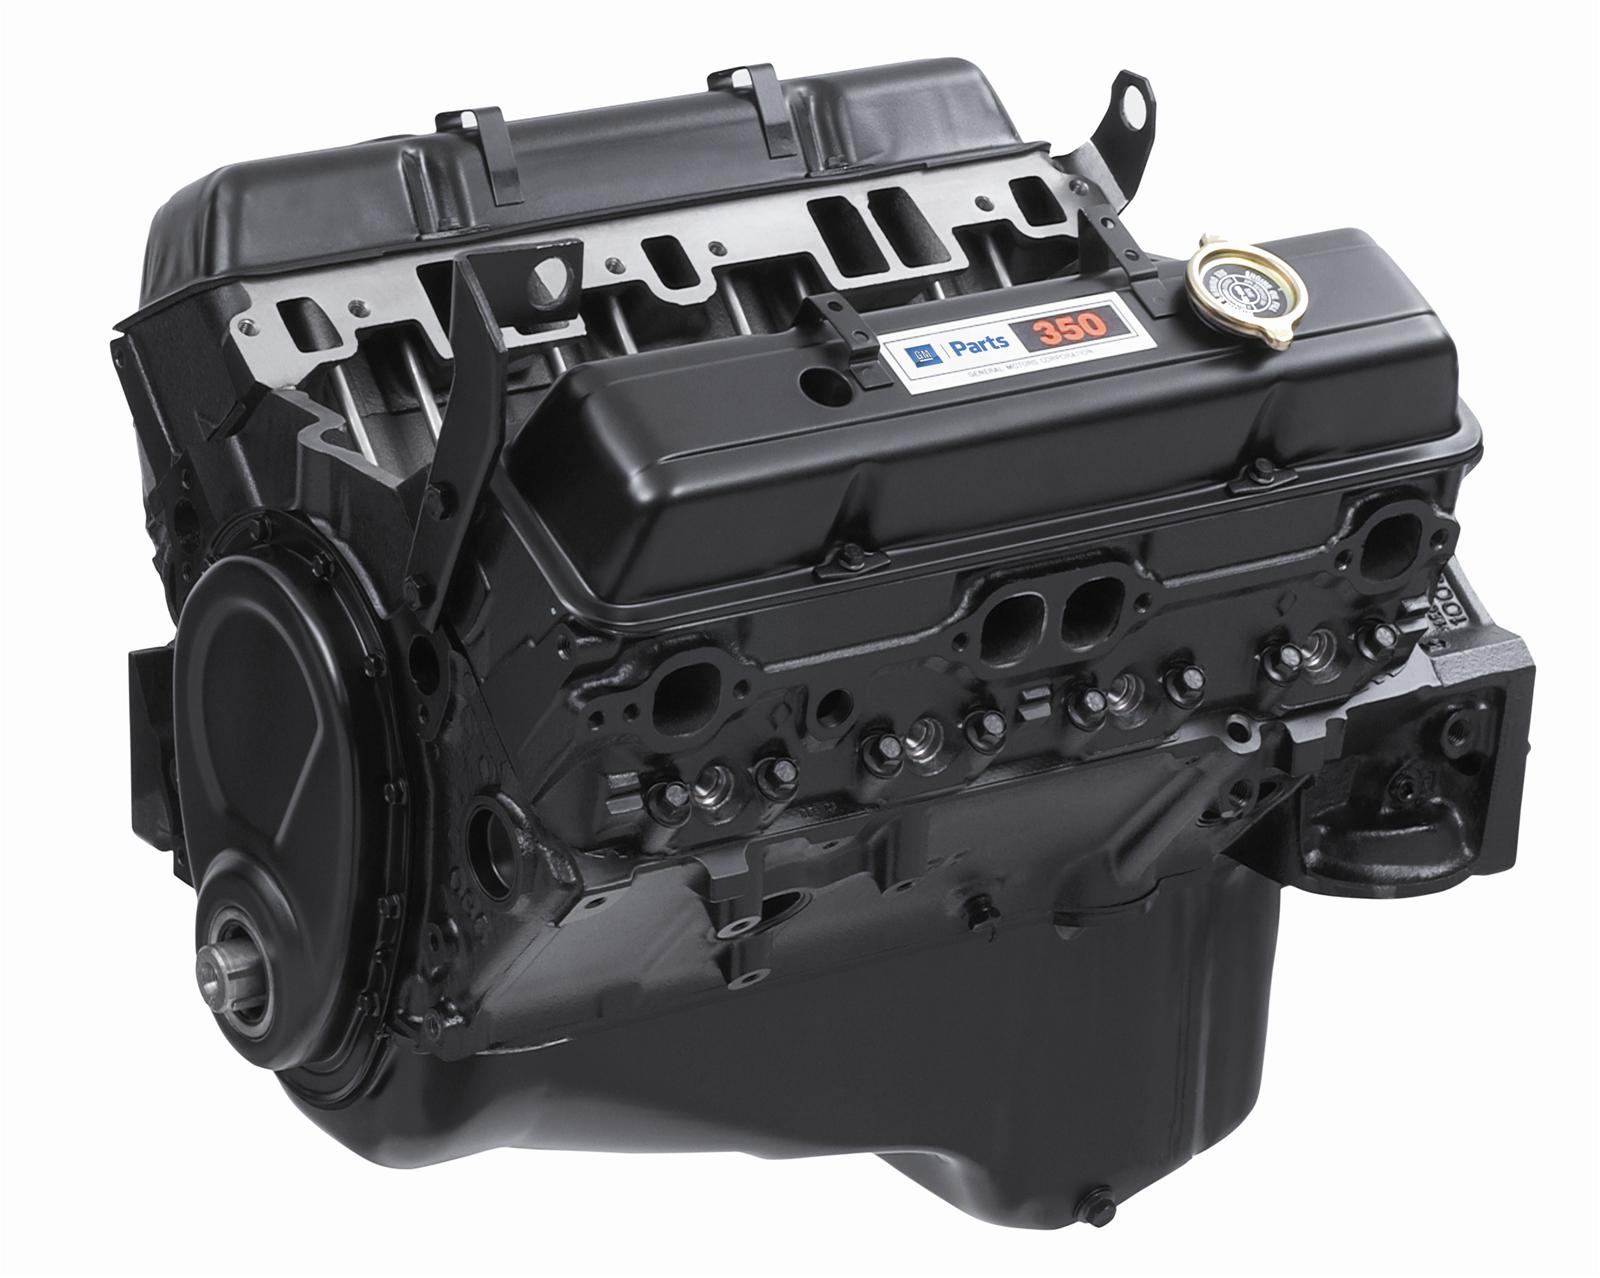 hight resolution of chevrolet performance 350 c i d base engine assemblies 10067353 free shipping on orders over 99 at summit racing